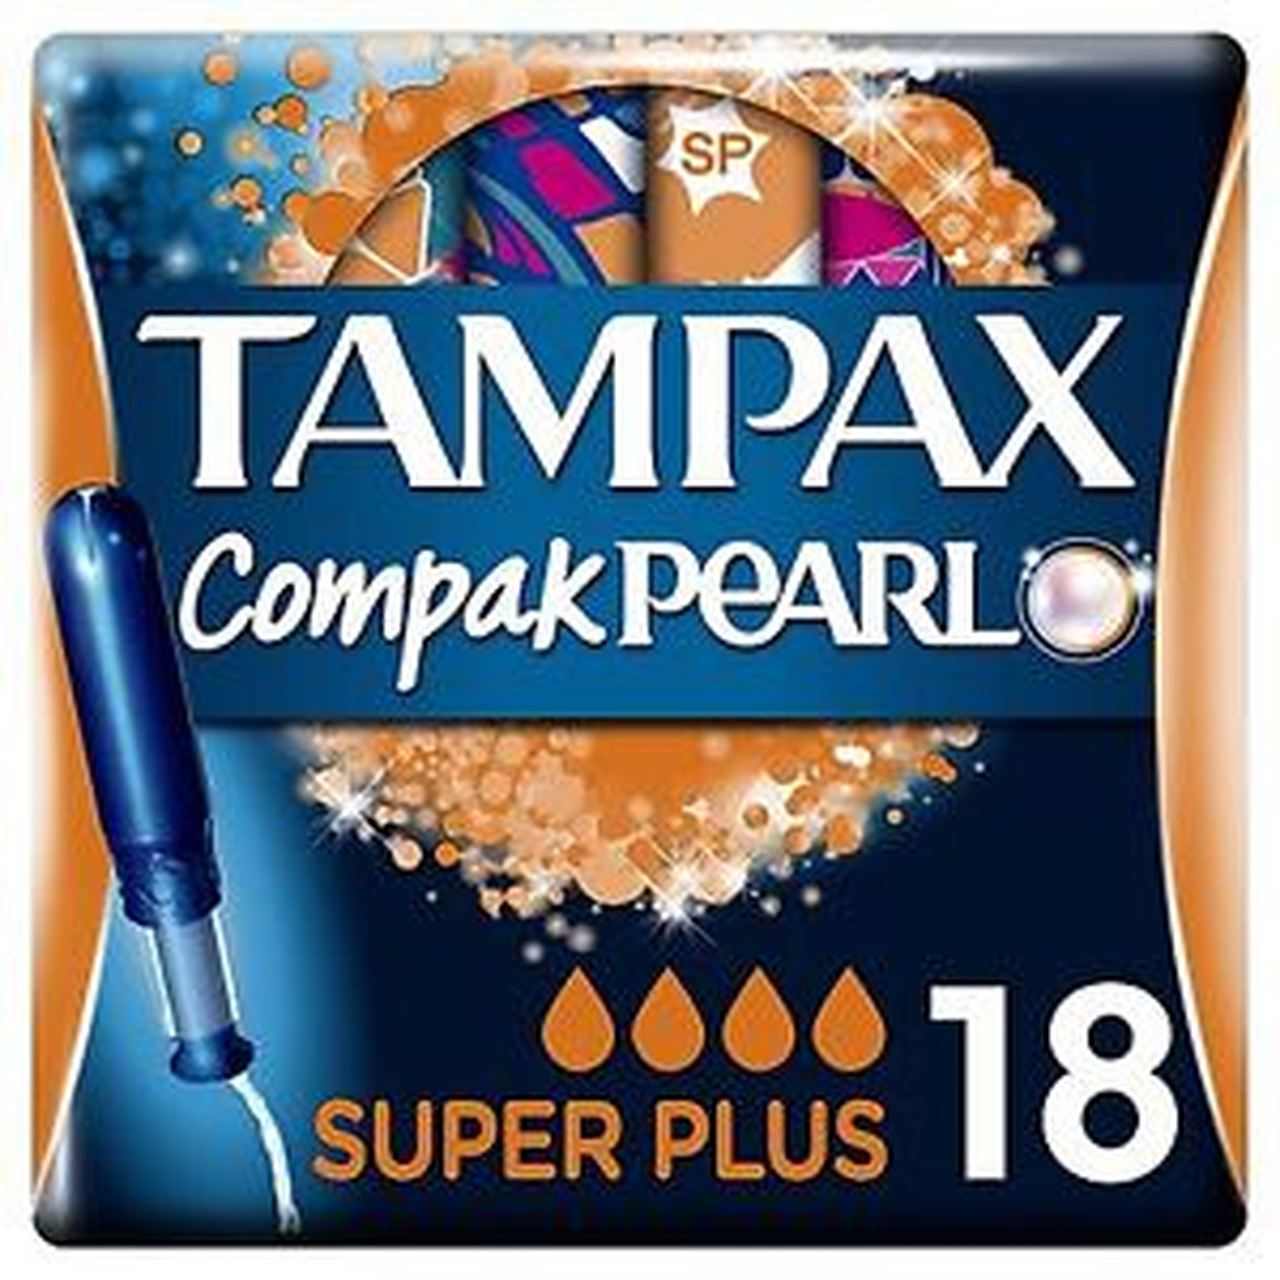 TAMPAX COMPAX PEARL SUPER PLUS (18's)